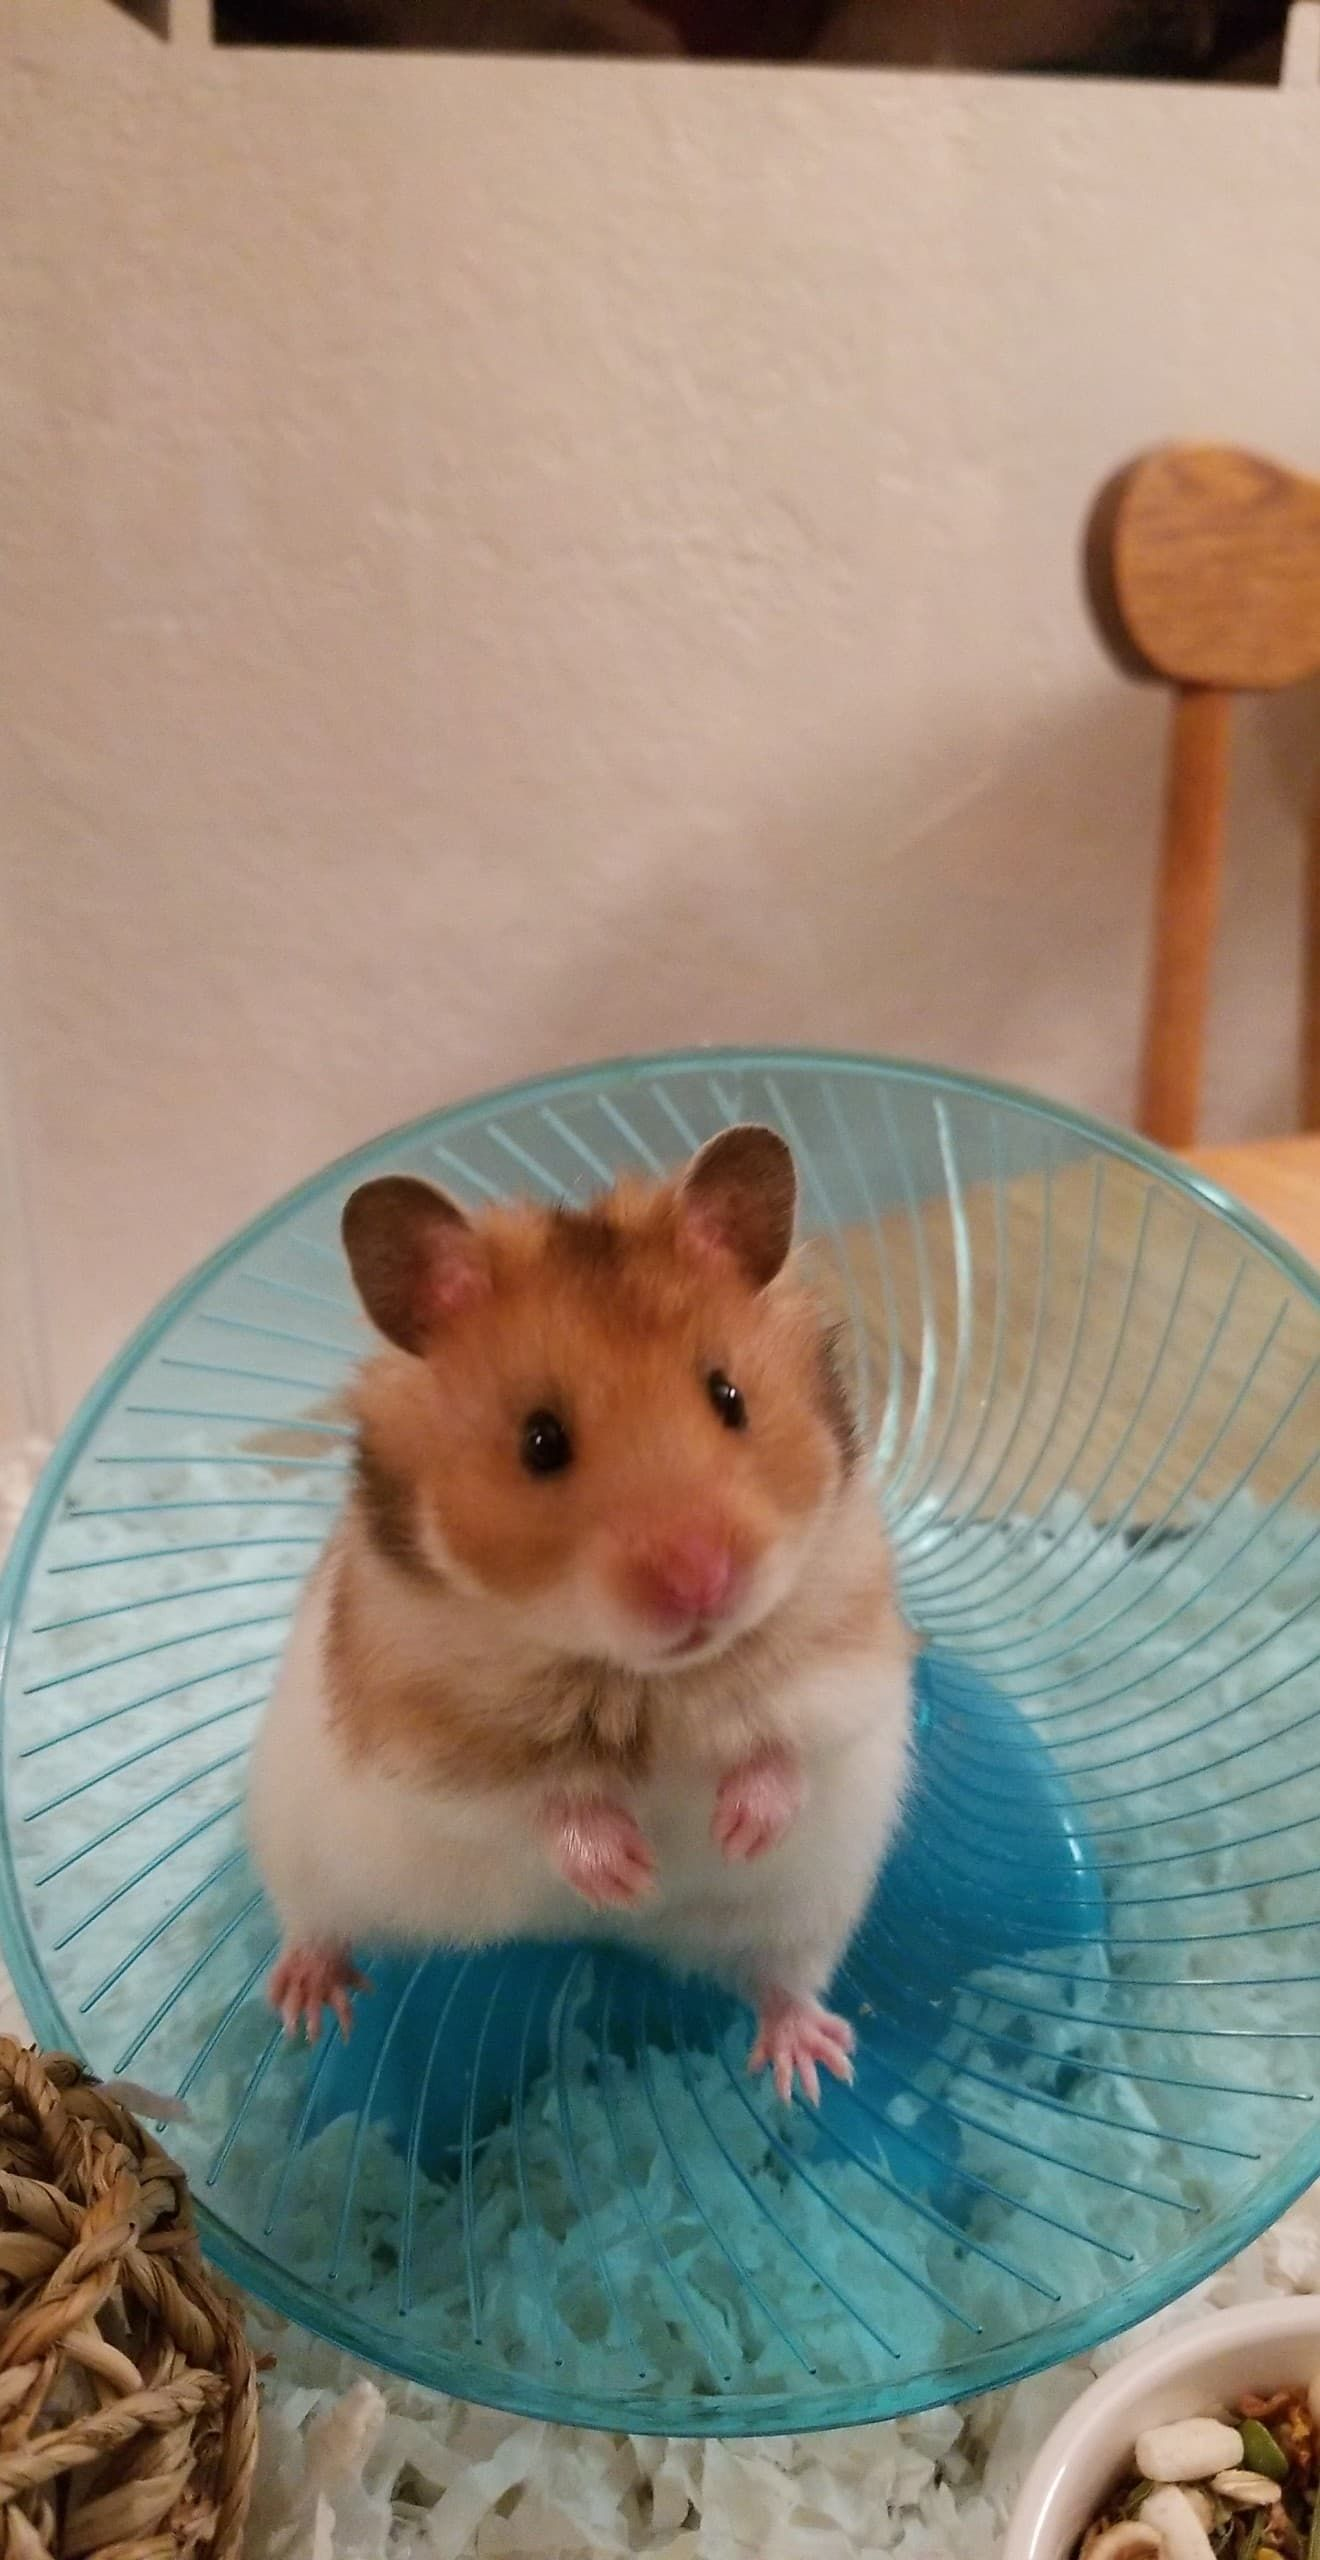 Meet Our Newest Addition To Our Fam Baby Daisy We Now Have 4 Hams I Love Them All Equally I Am Getting Her A New Wheel T Cute Hamsters Hamster Life Hamster